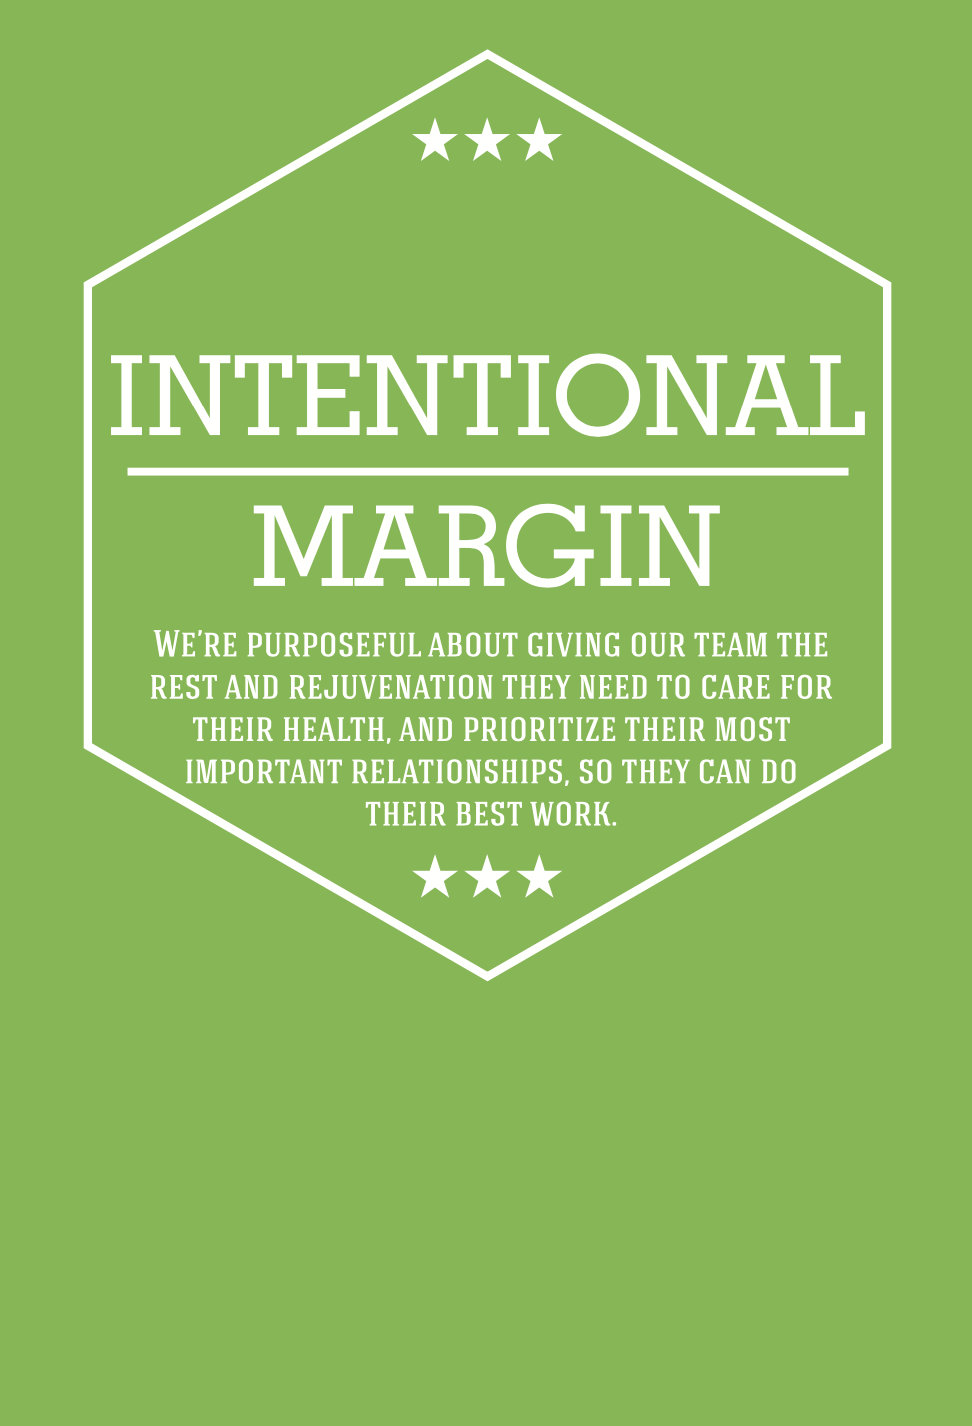 Harvest Wealth Group Core Values- Intentional Margin